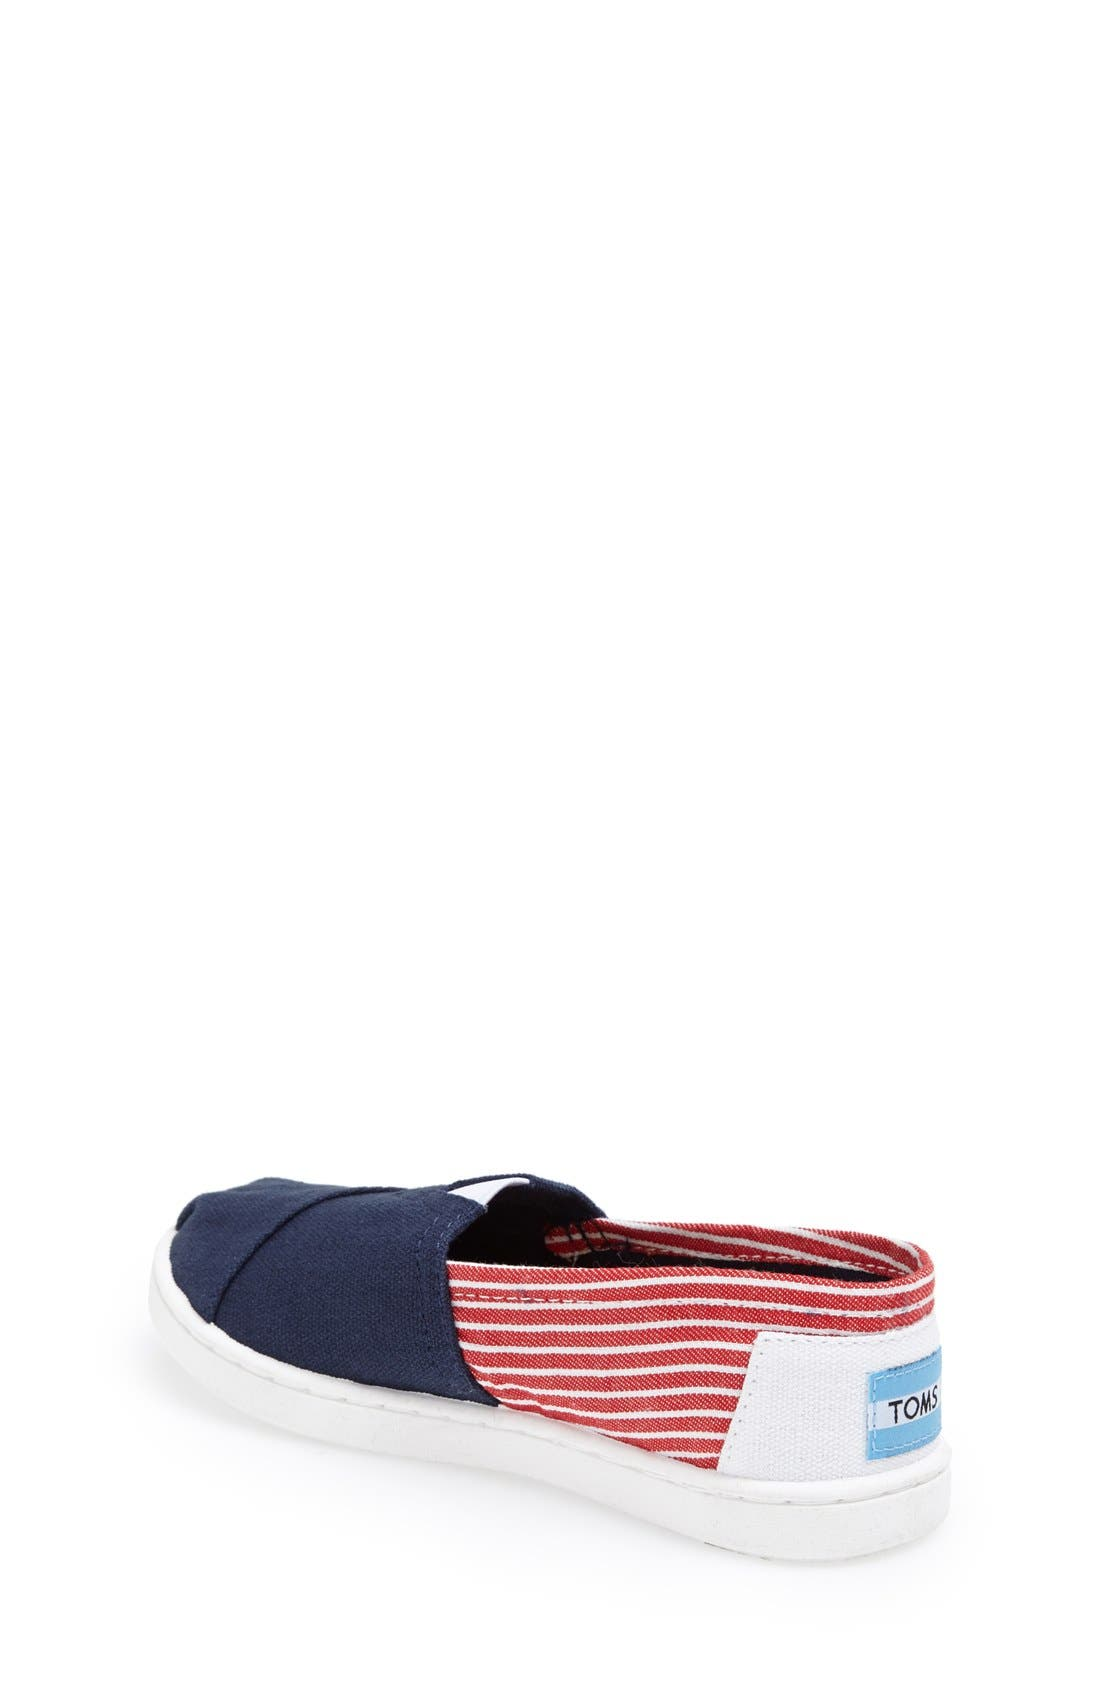 Alternate Image 2  - TOMS 'Youth Classic - Freedom' Slip-On (Toddler, Little Kid & Big Kid)